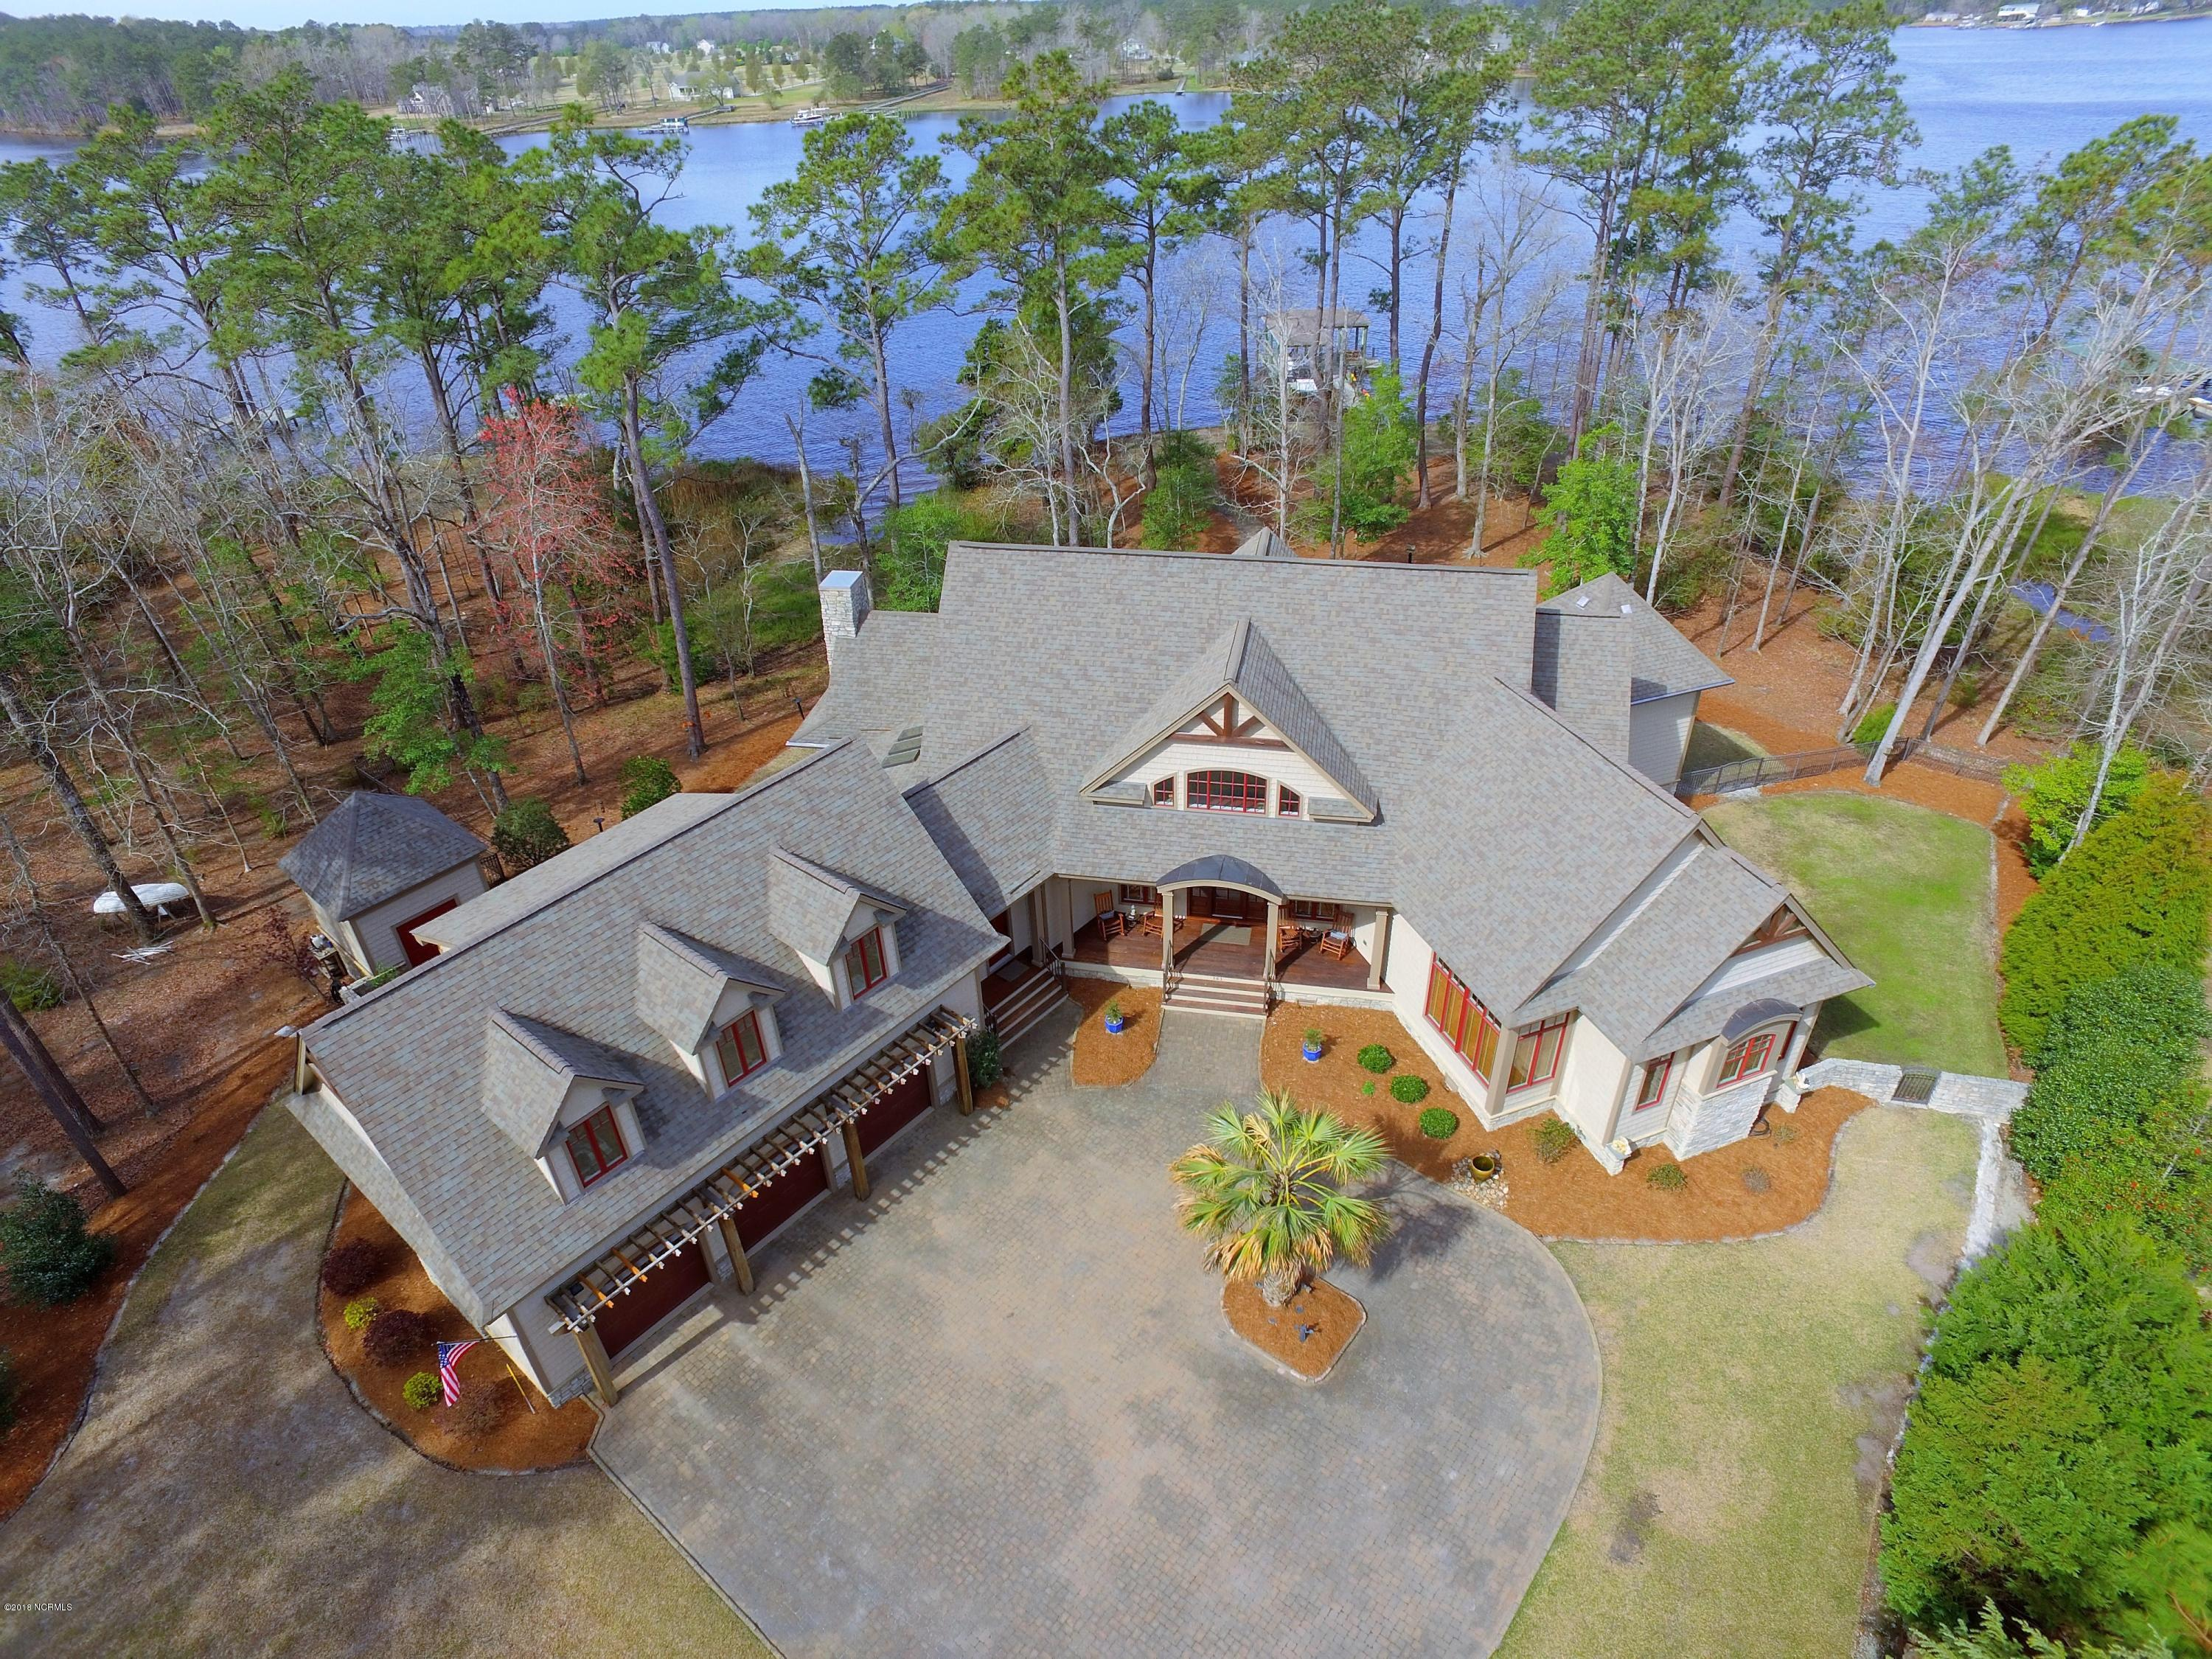 161 Cape Hatteras Point, Oriental, North Carolina, 4 Bedrooms Bedrooms, 11 Rooms Rooms,4 BathroomsBathrooms,Single family residence,For sale,Cape Hatteras,100109182